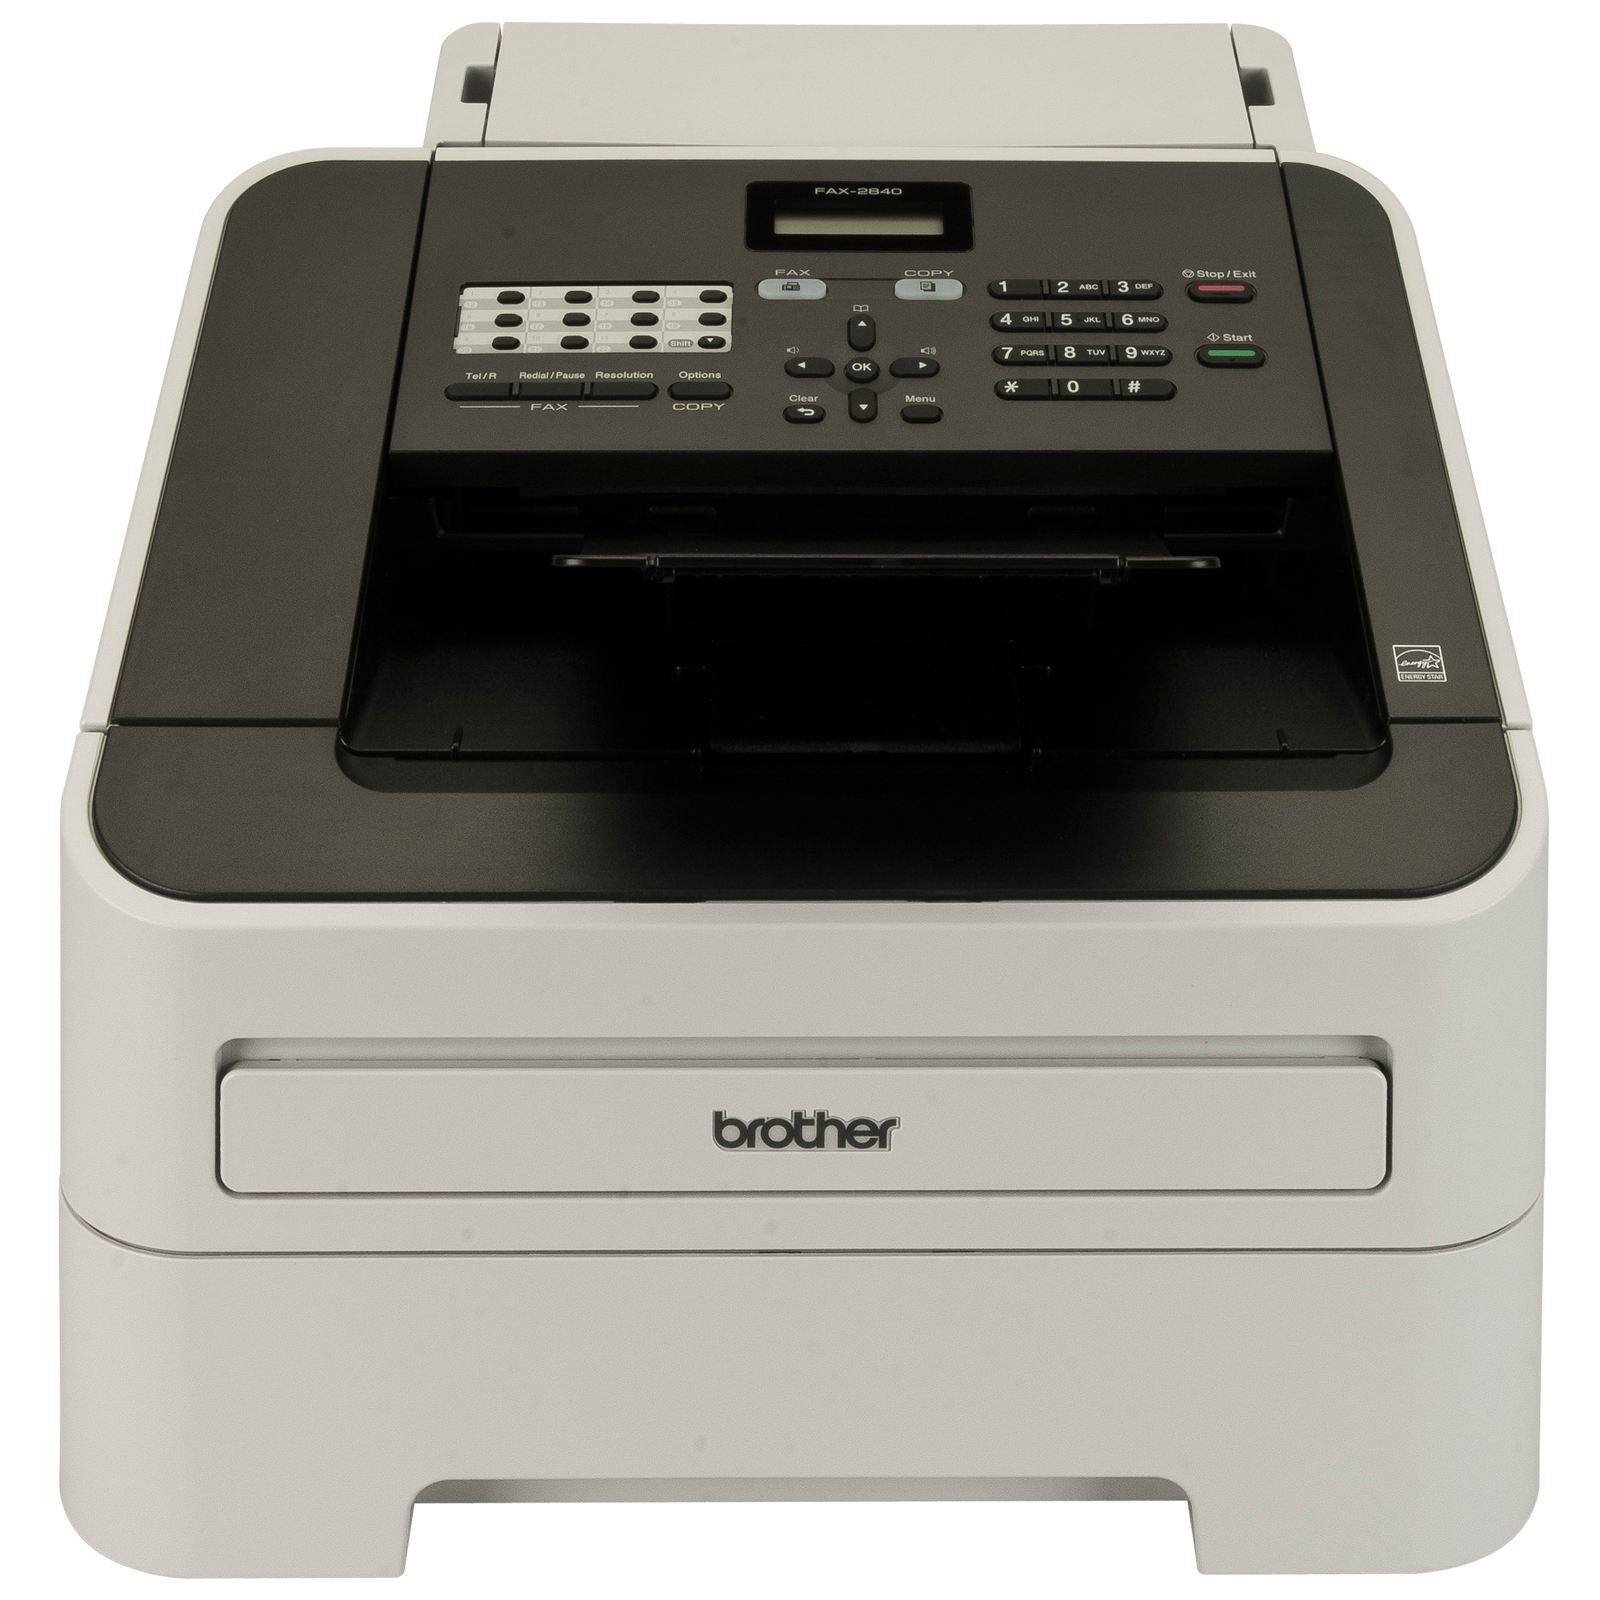 brother FAX-2840 Laser Fax Machine FAX2840ZU1 - MW01